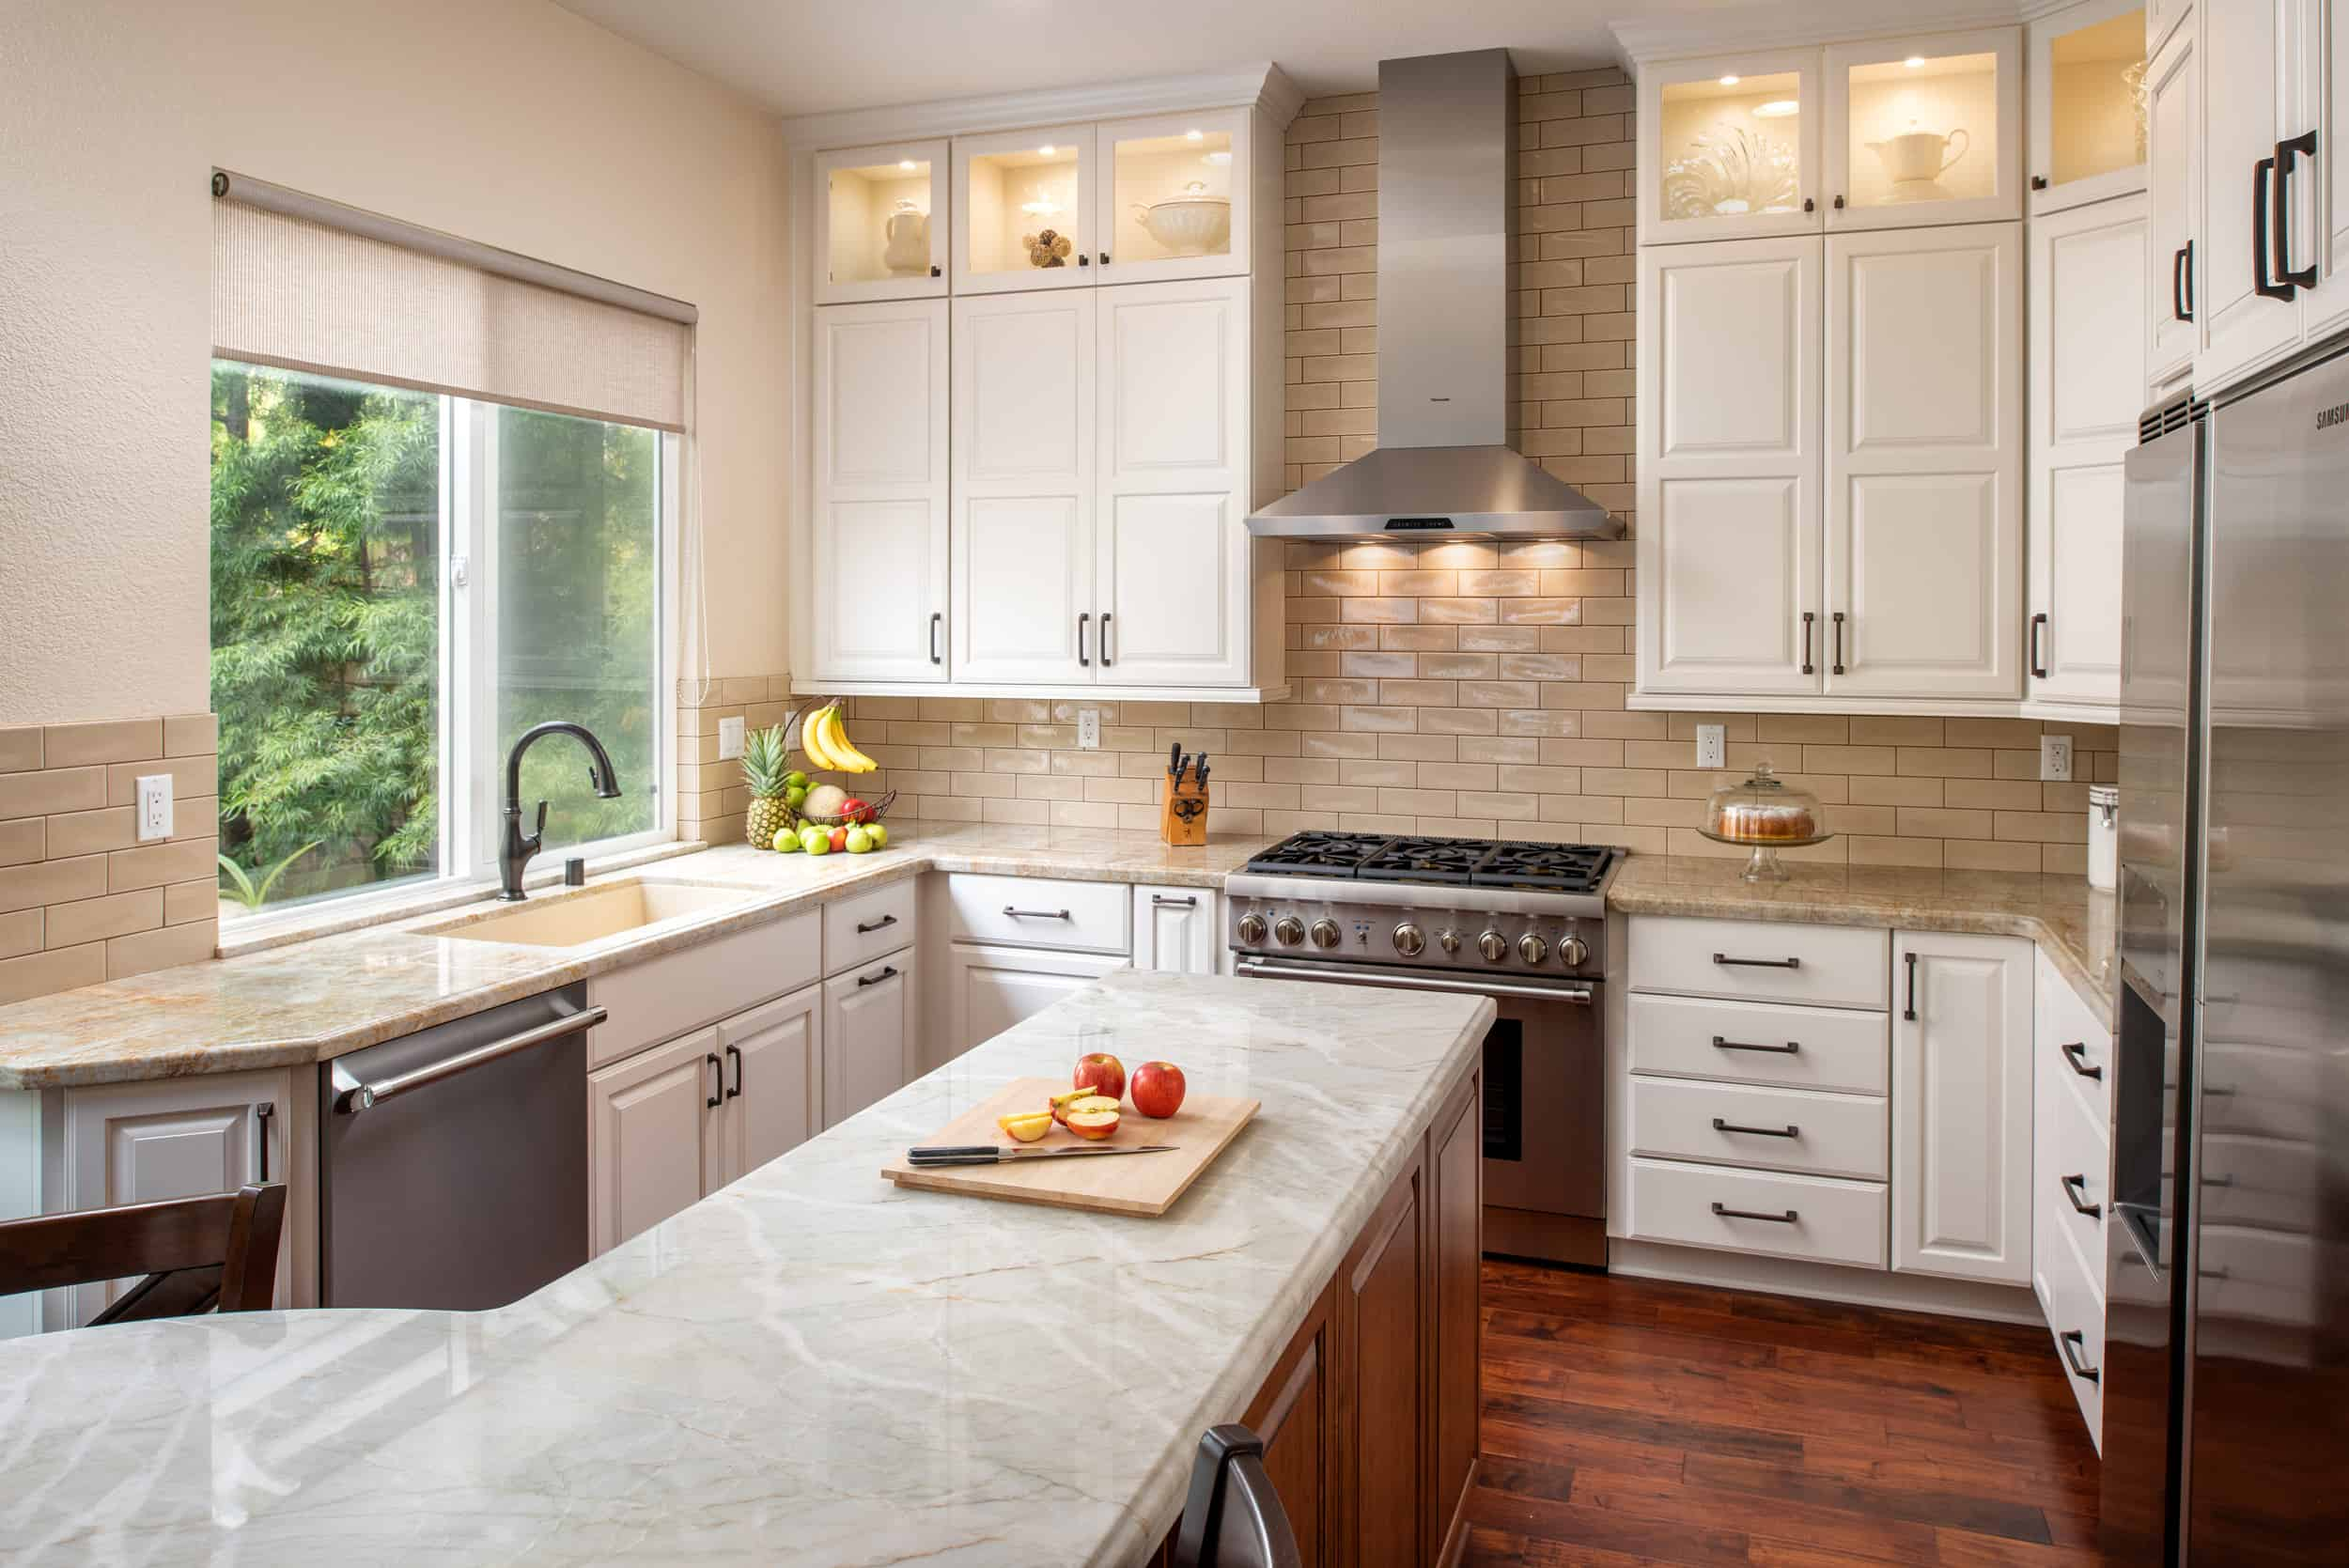 san diego kitchen remodel top of the line faucets remodeling design works remodels